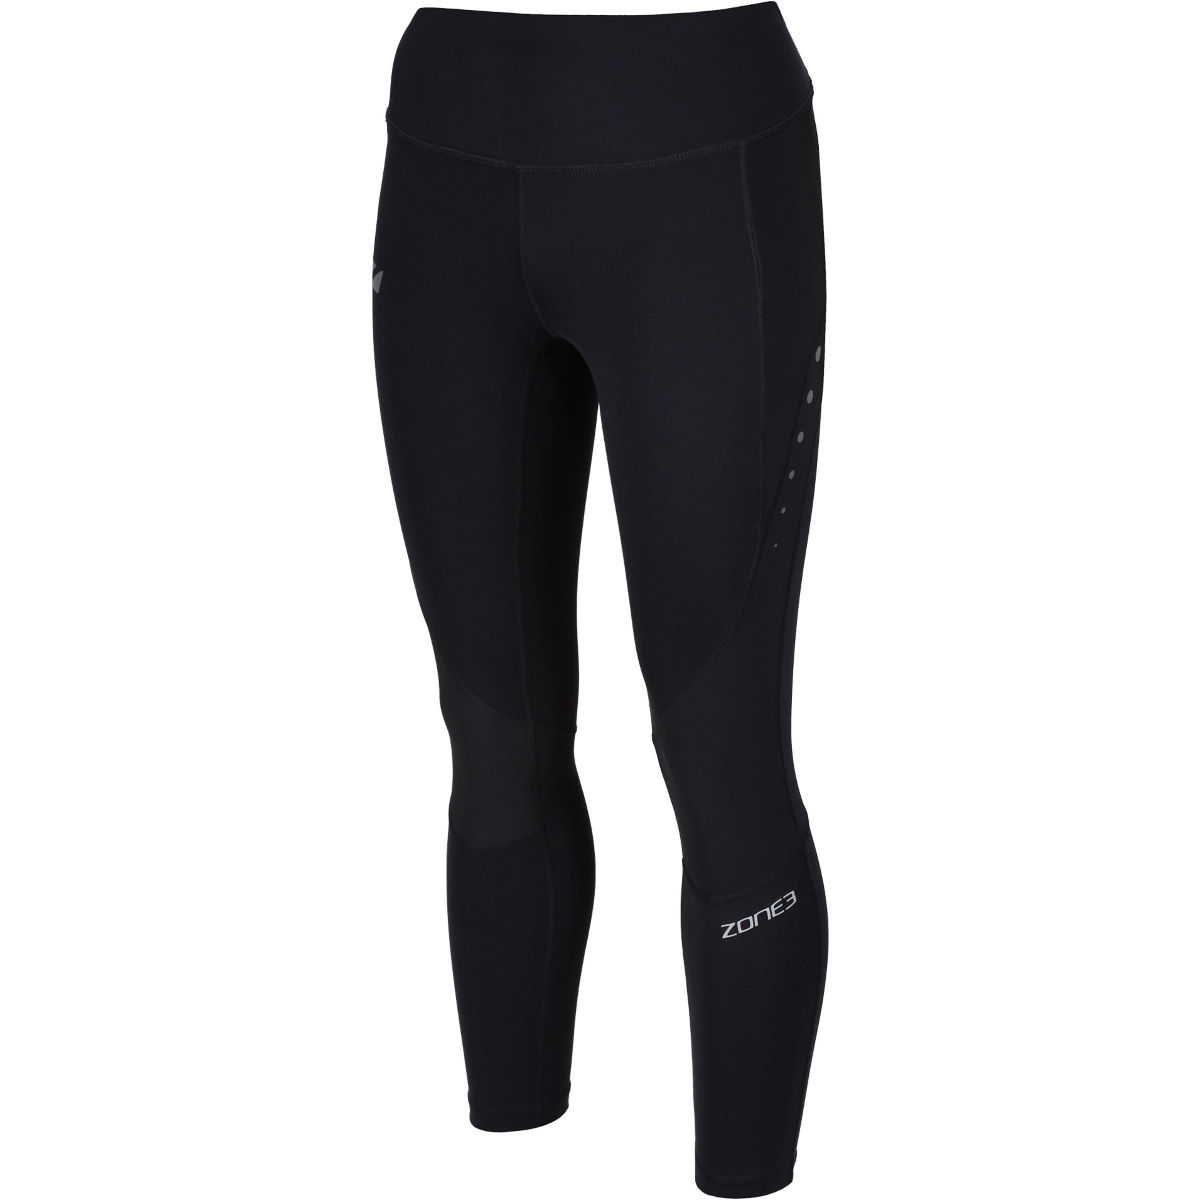 Zone3 Womens Compression 7/8th Length Tights - Extra Large